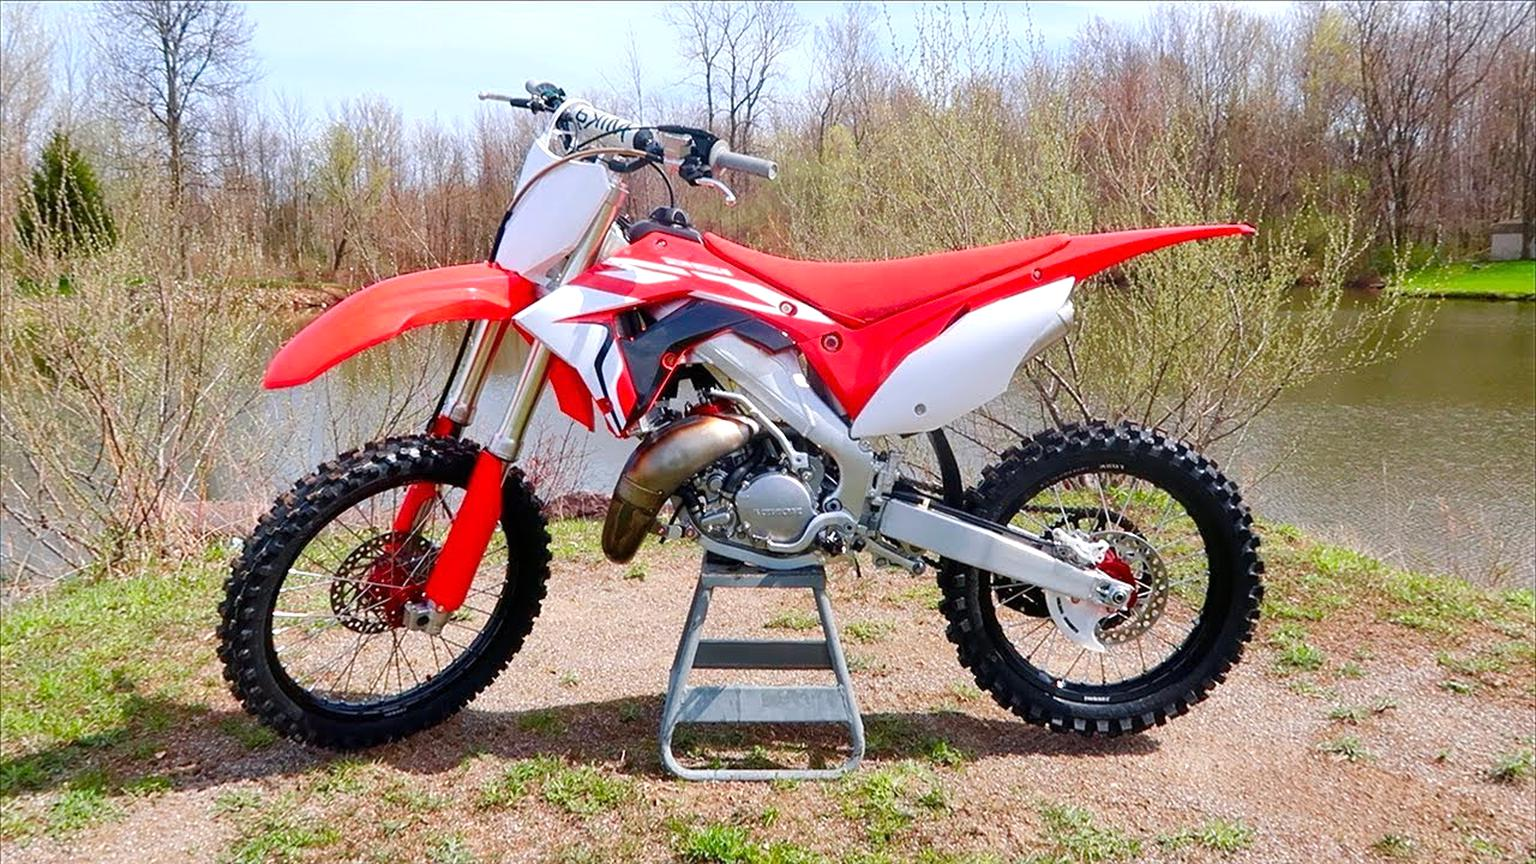 Cr 125 for sale